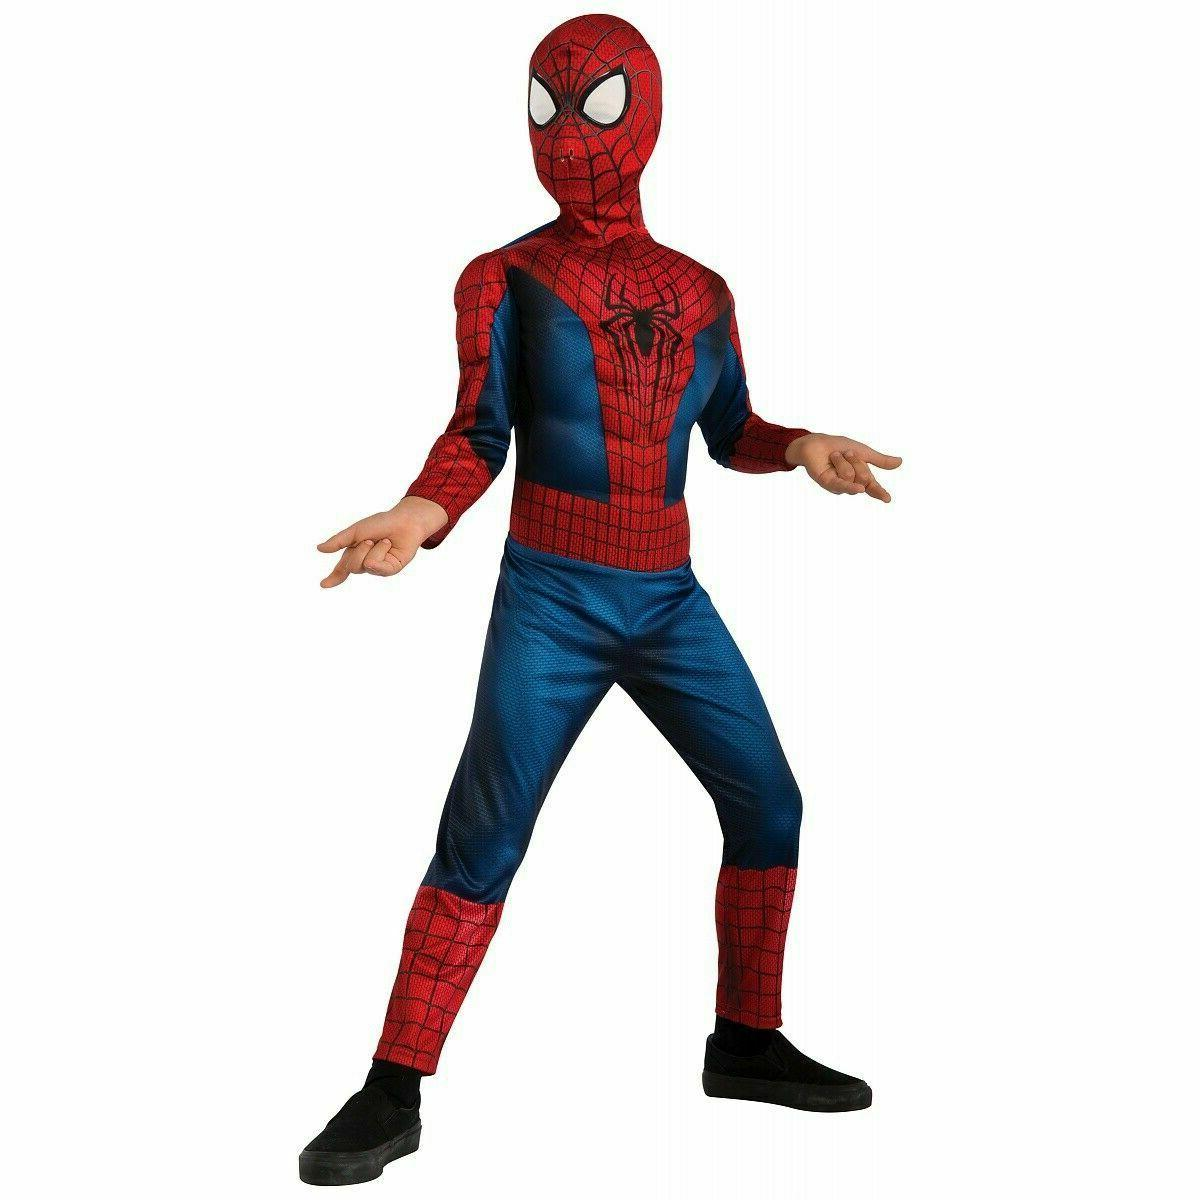 spiderman marvel costume kids superhero halloween fancy